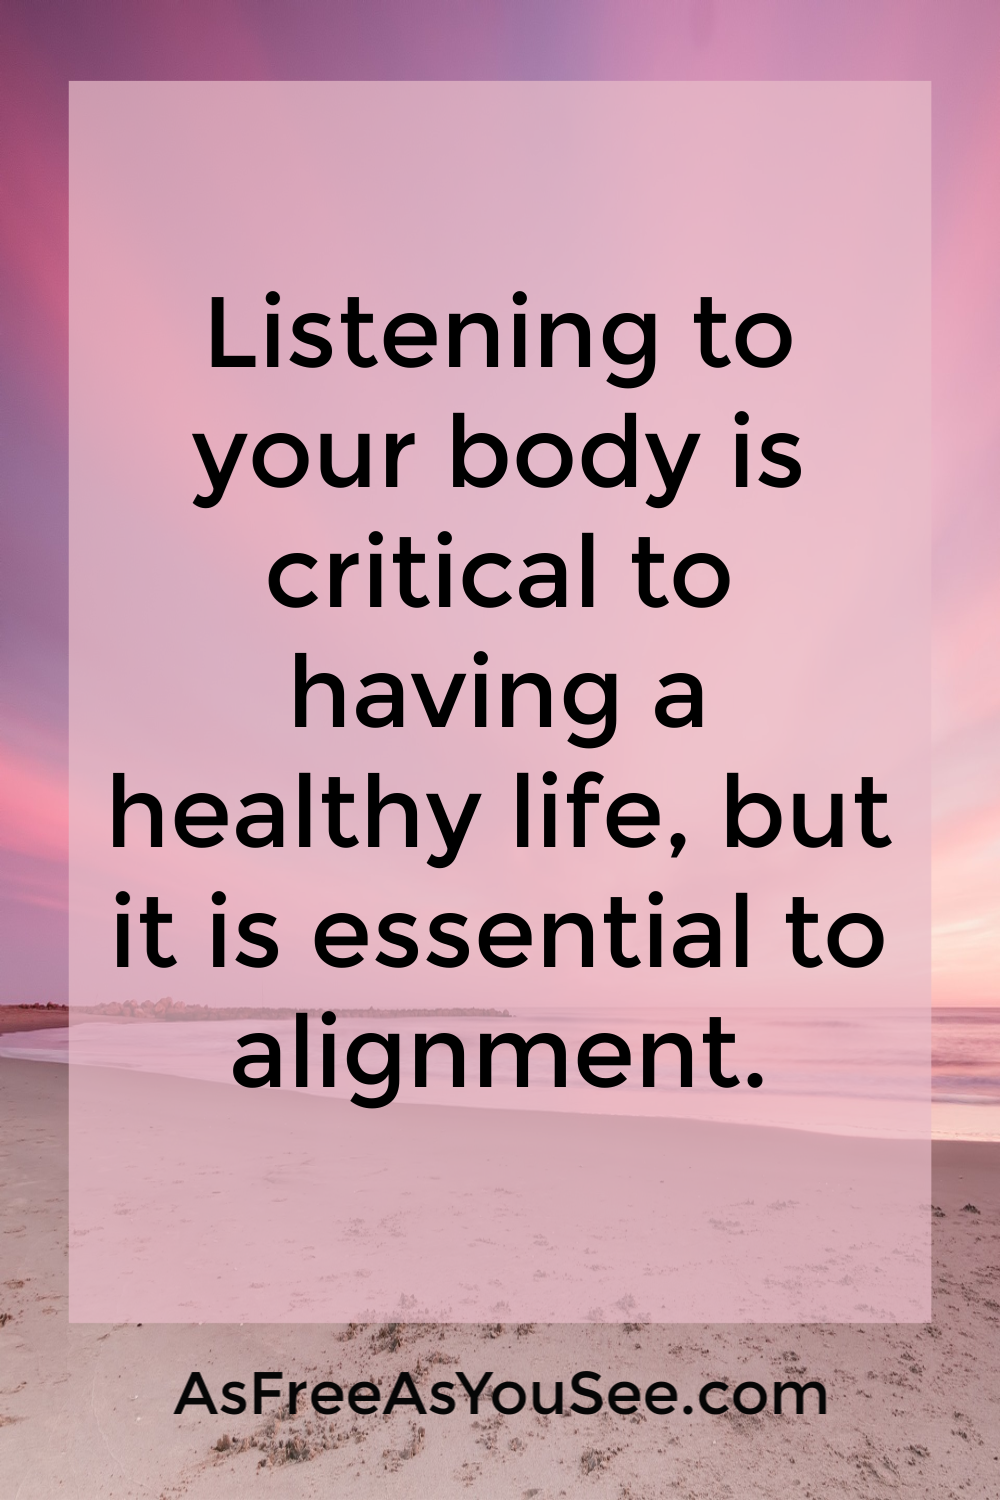 If you struggle with manifesting your dream life, you're missing this one element that matters most. Alignment.  Learn 3 tips on how you can get into alignment and start manifesting your best life.